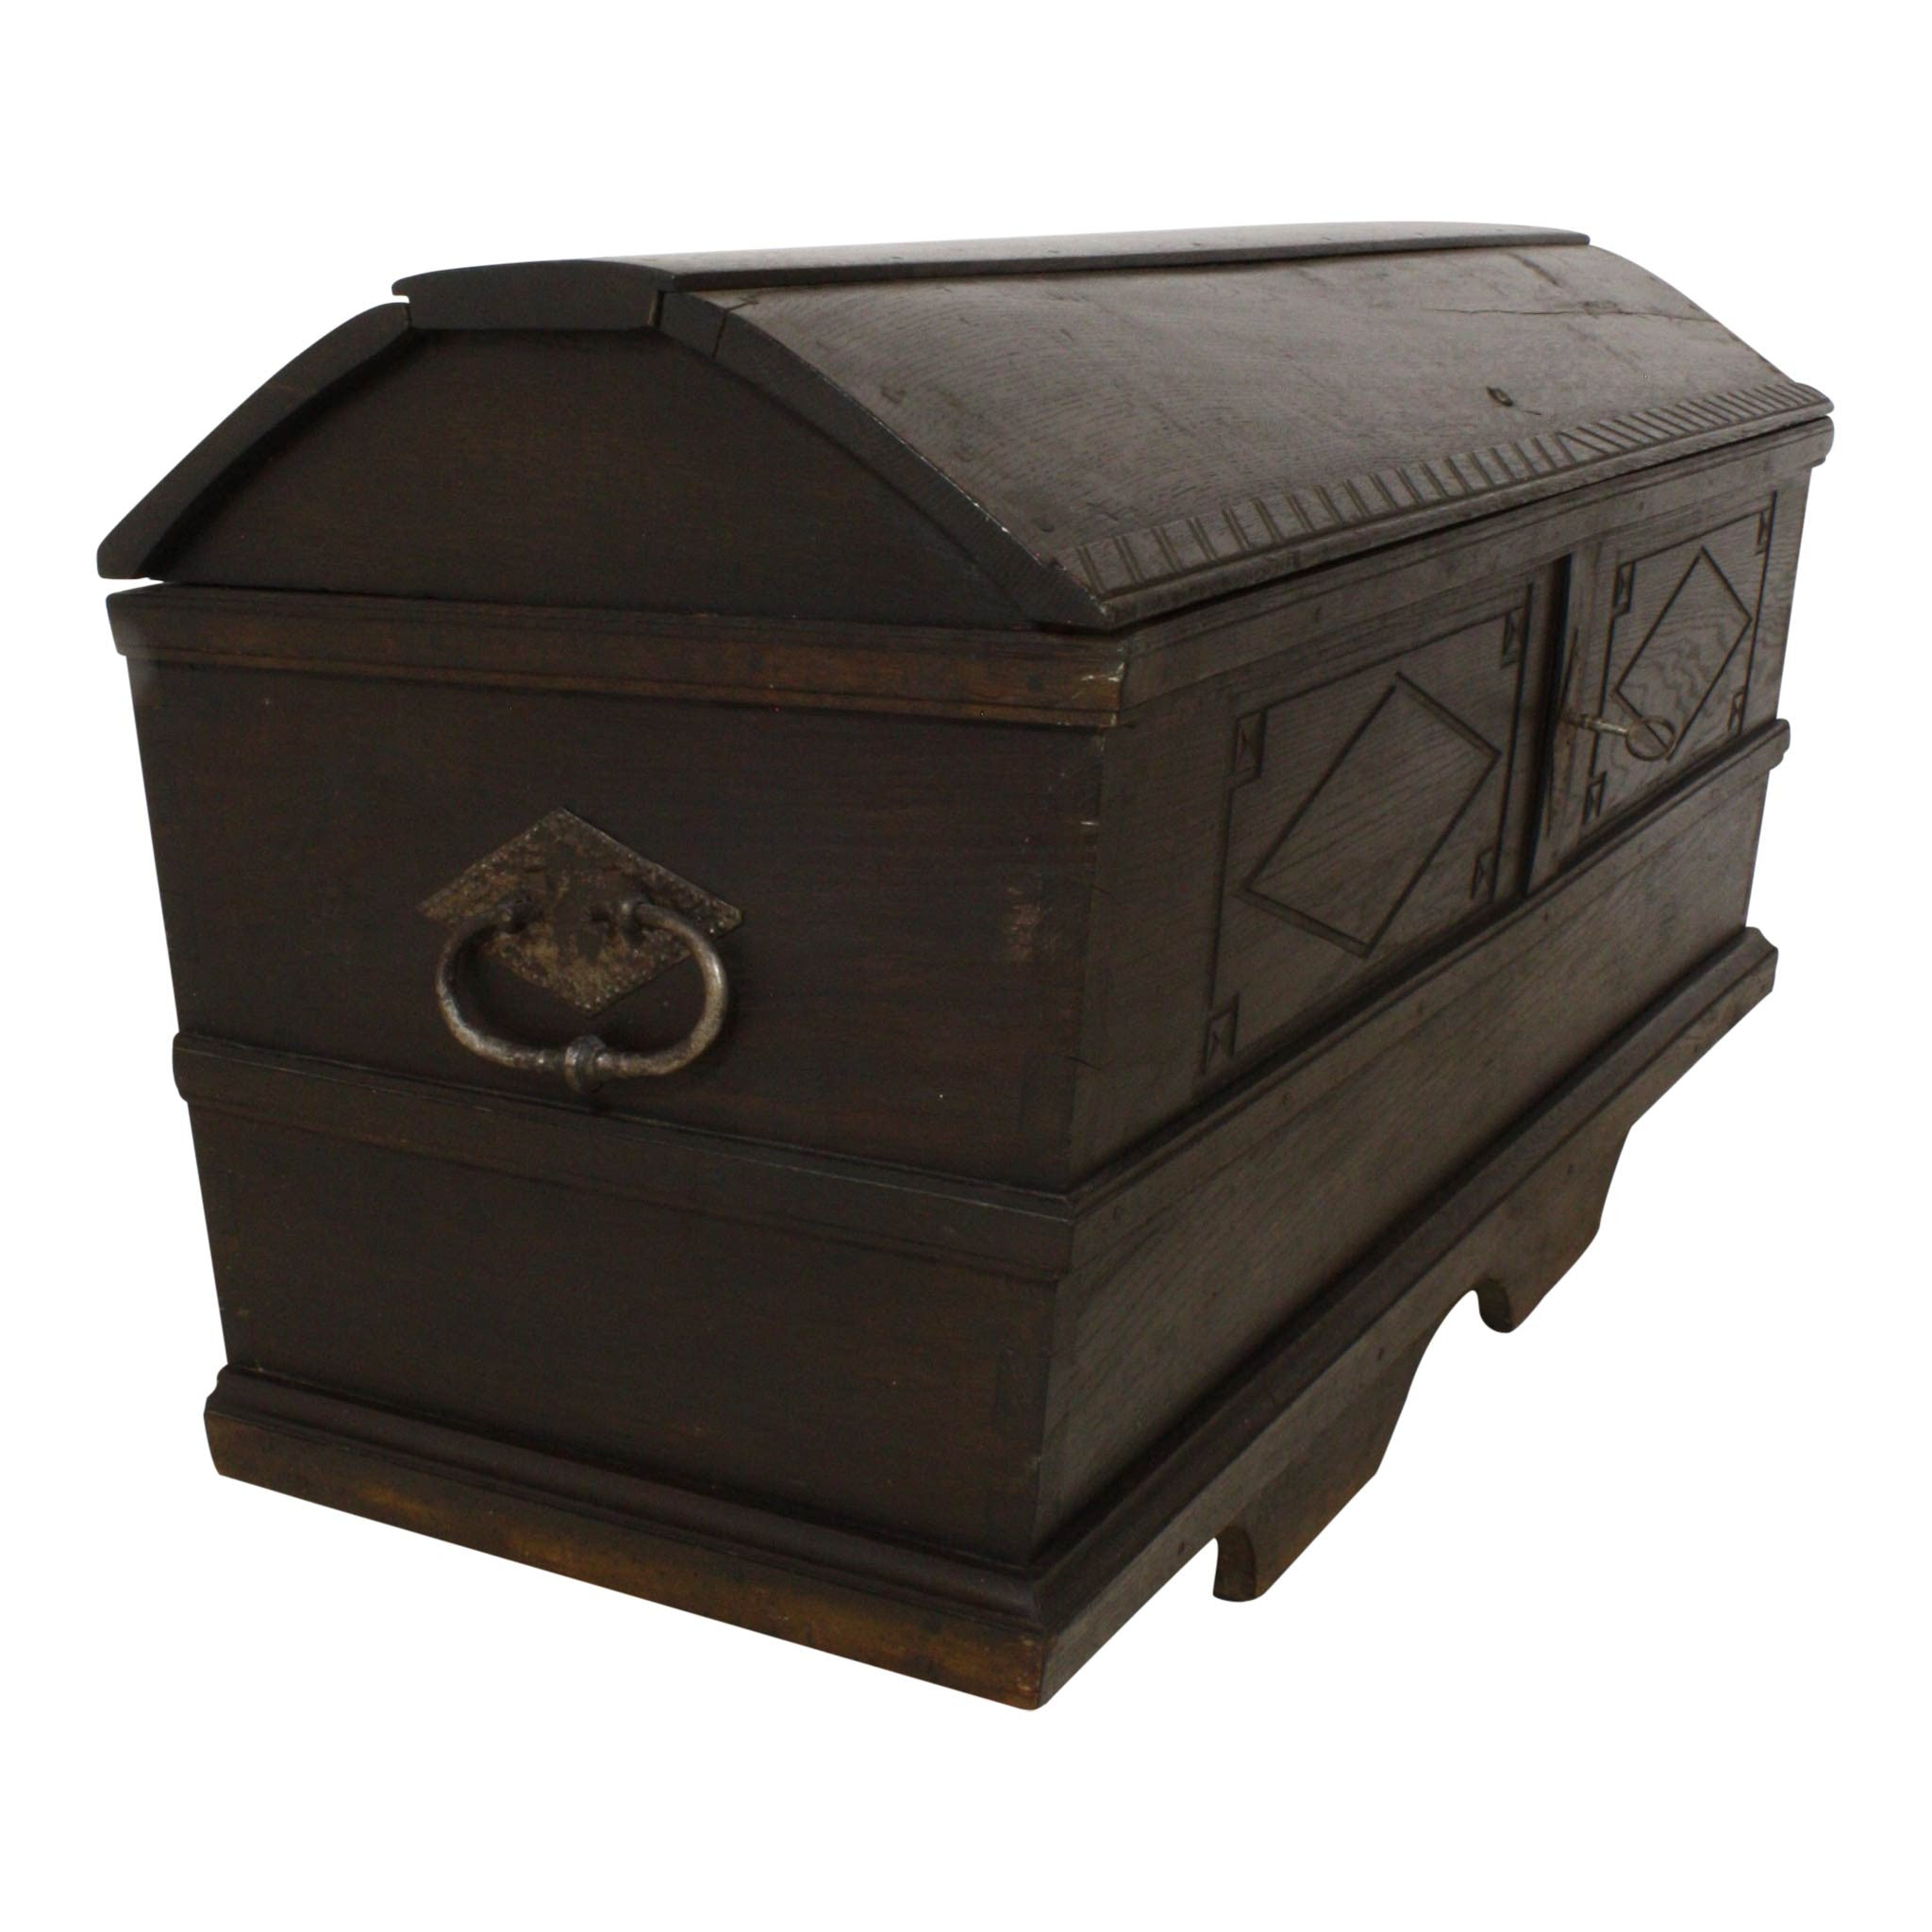 19th Century German Trunk (1stdibs)